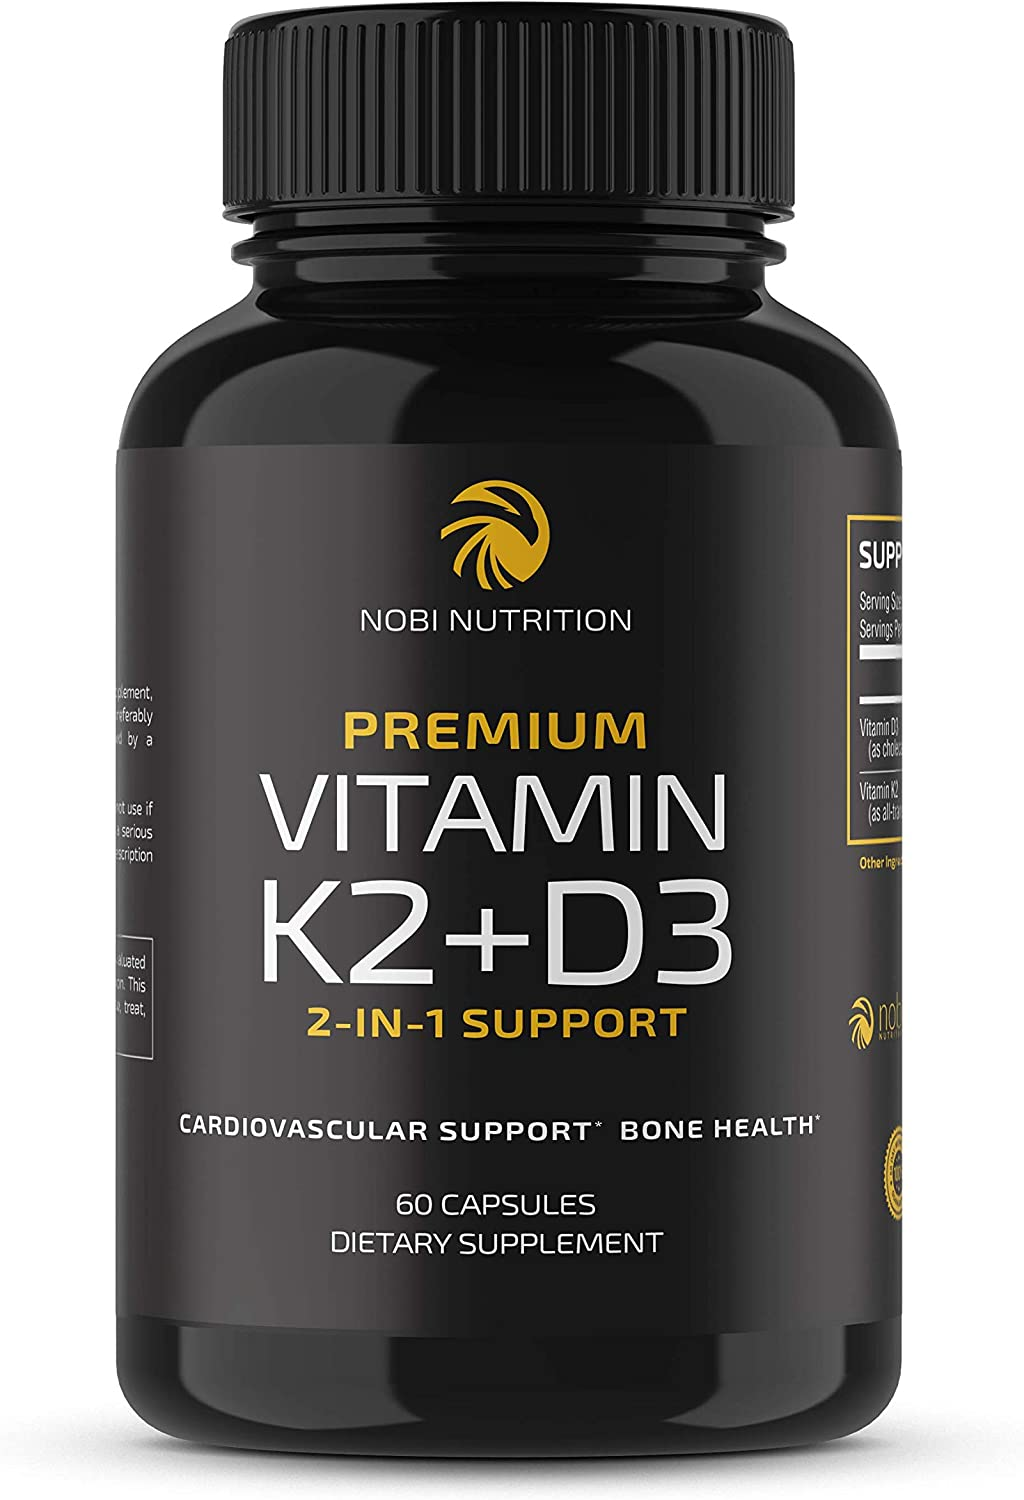 Nobi Nutrition Vitamin K2 + D3 with Bioperine for Max Absorption - 2-in-1 Support for Your Heart, Bones & Teeth (60 Capsules)